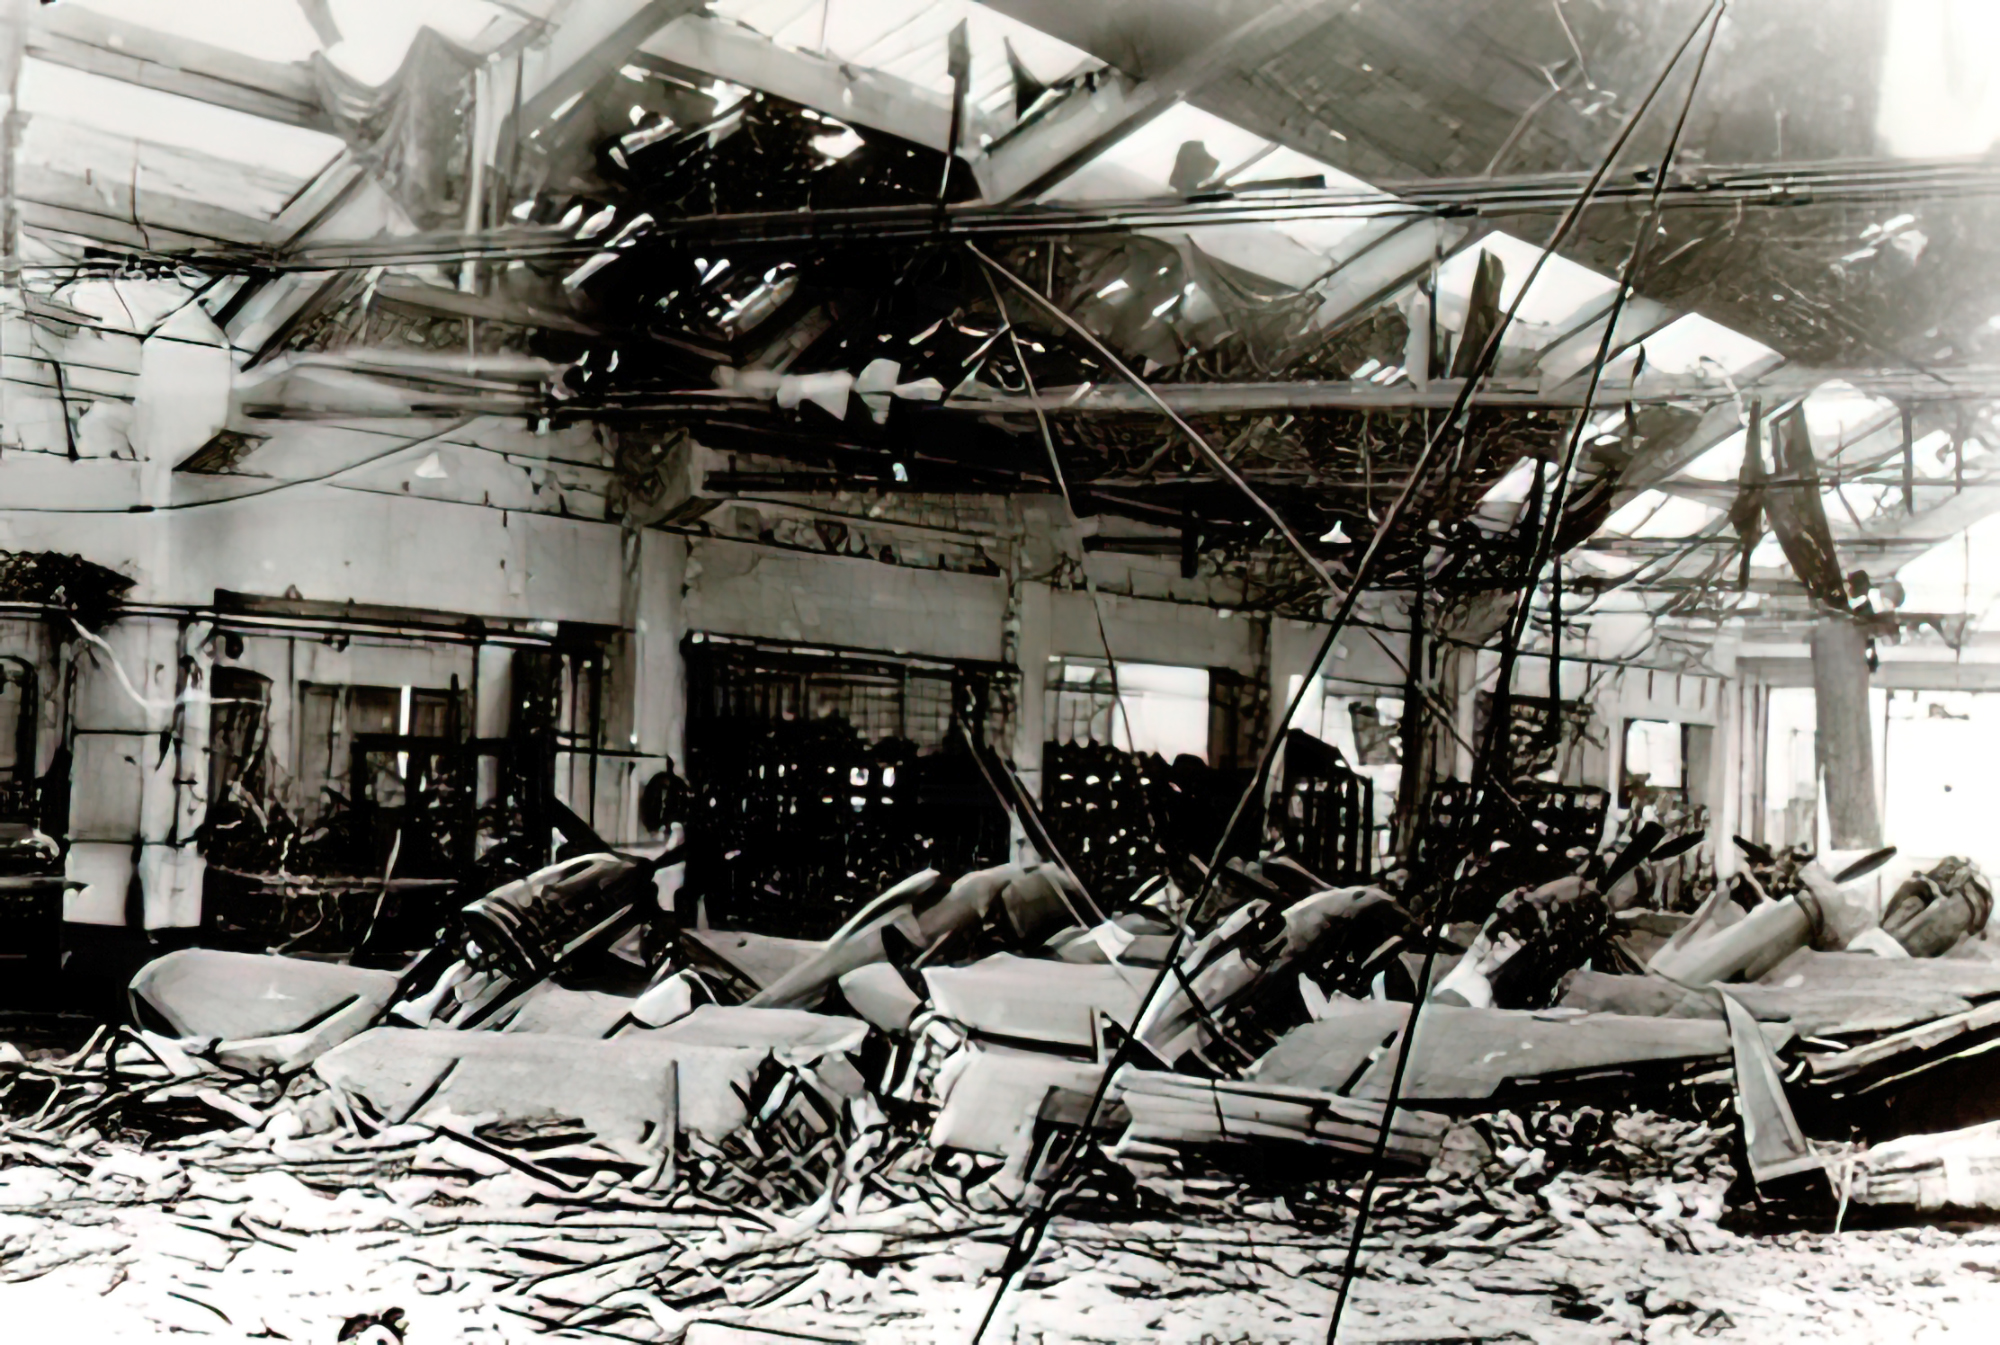 Reggiane plant assembly line destroyed by allied bombing Reggio Emilia Italy 8th Jan 1944 01